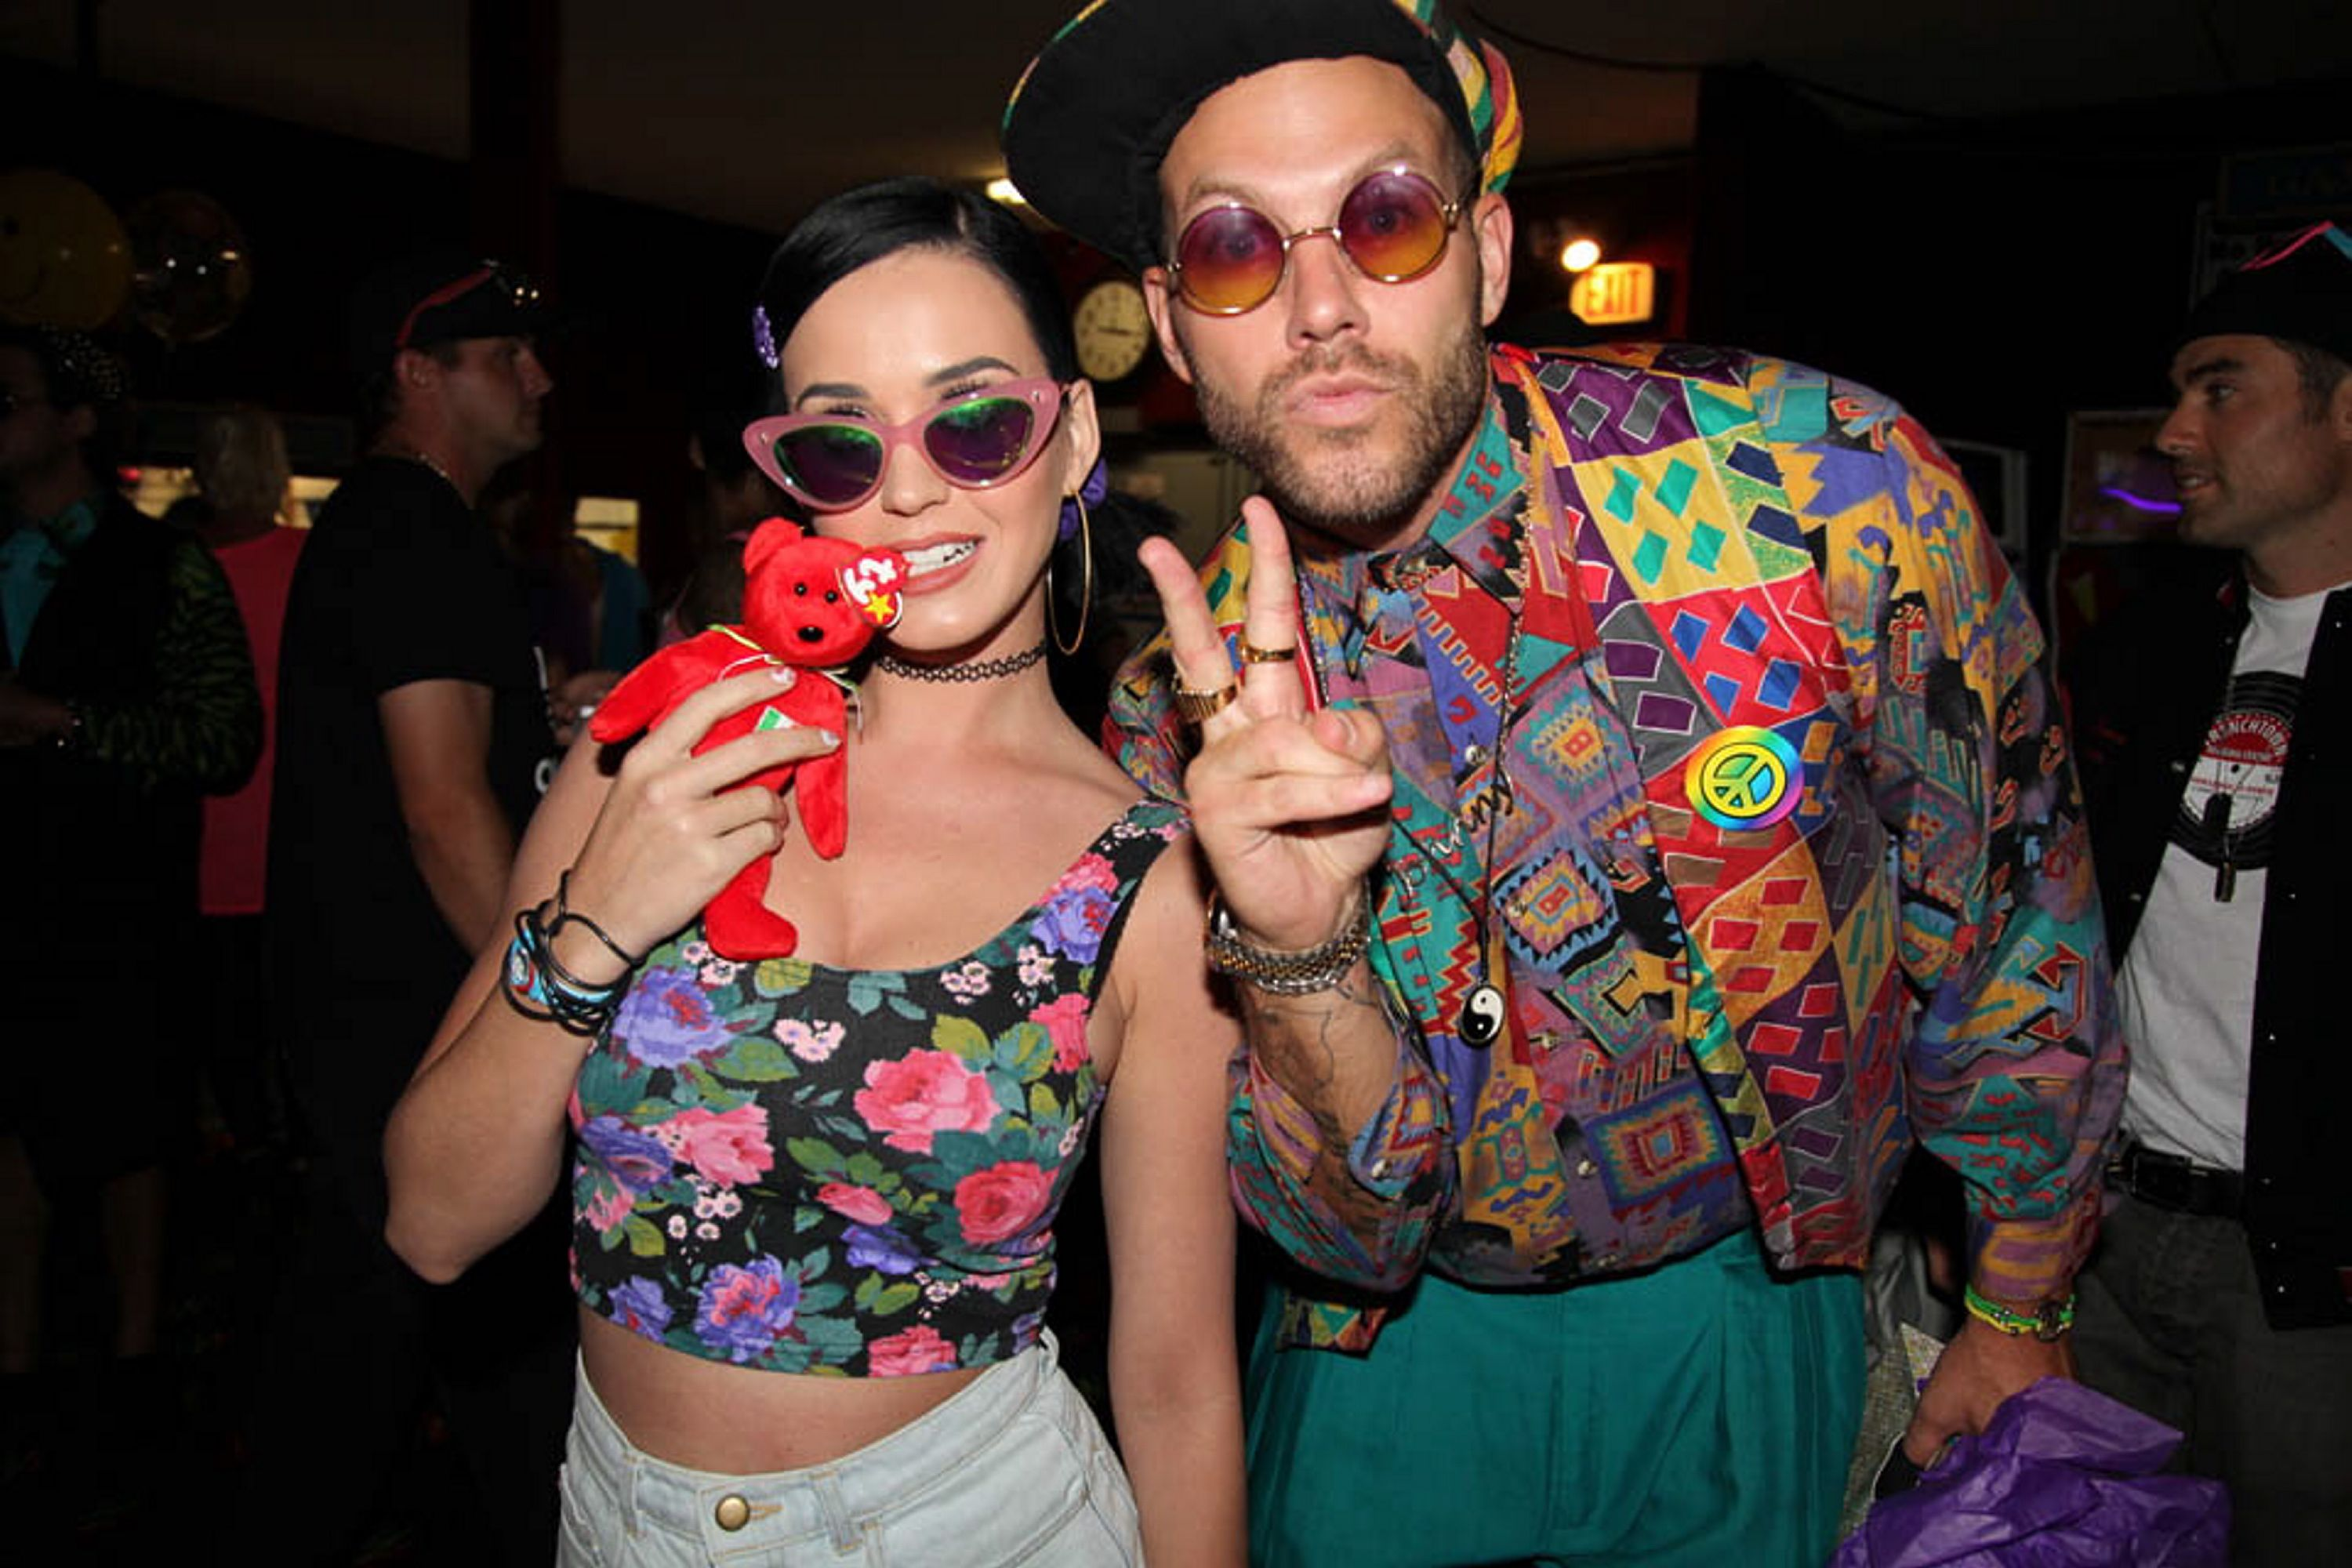 90s Party | 90s Party Costumes | Pinterest